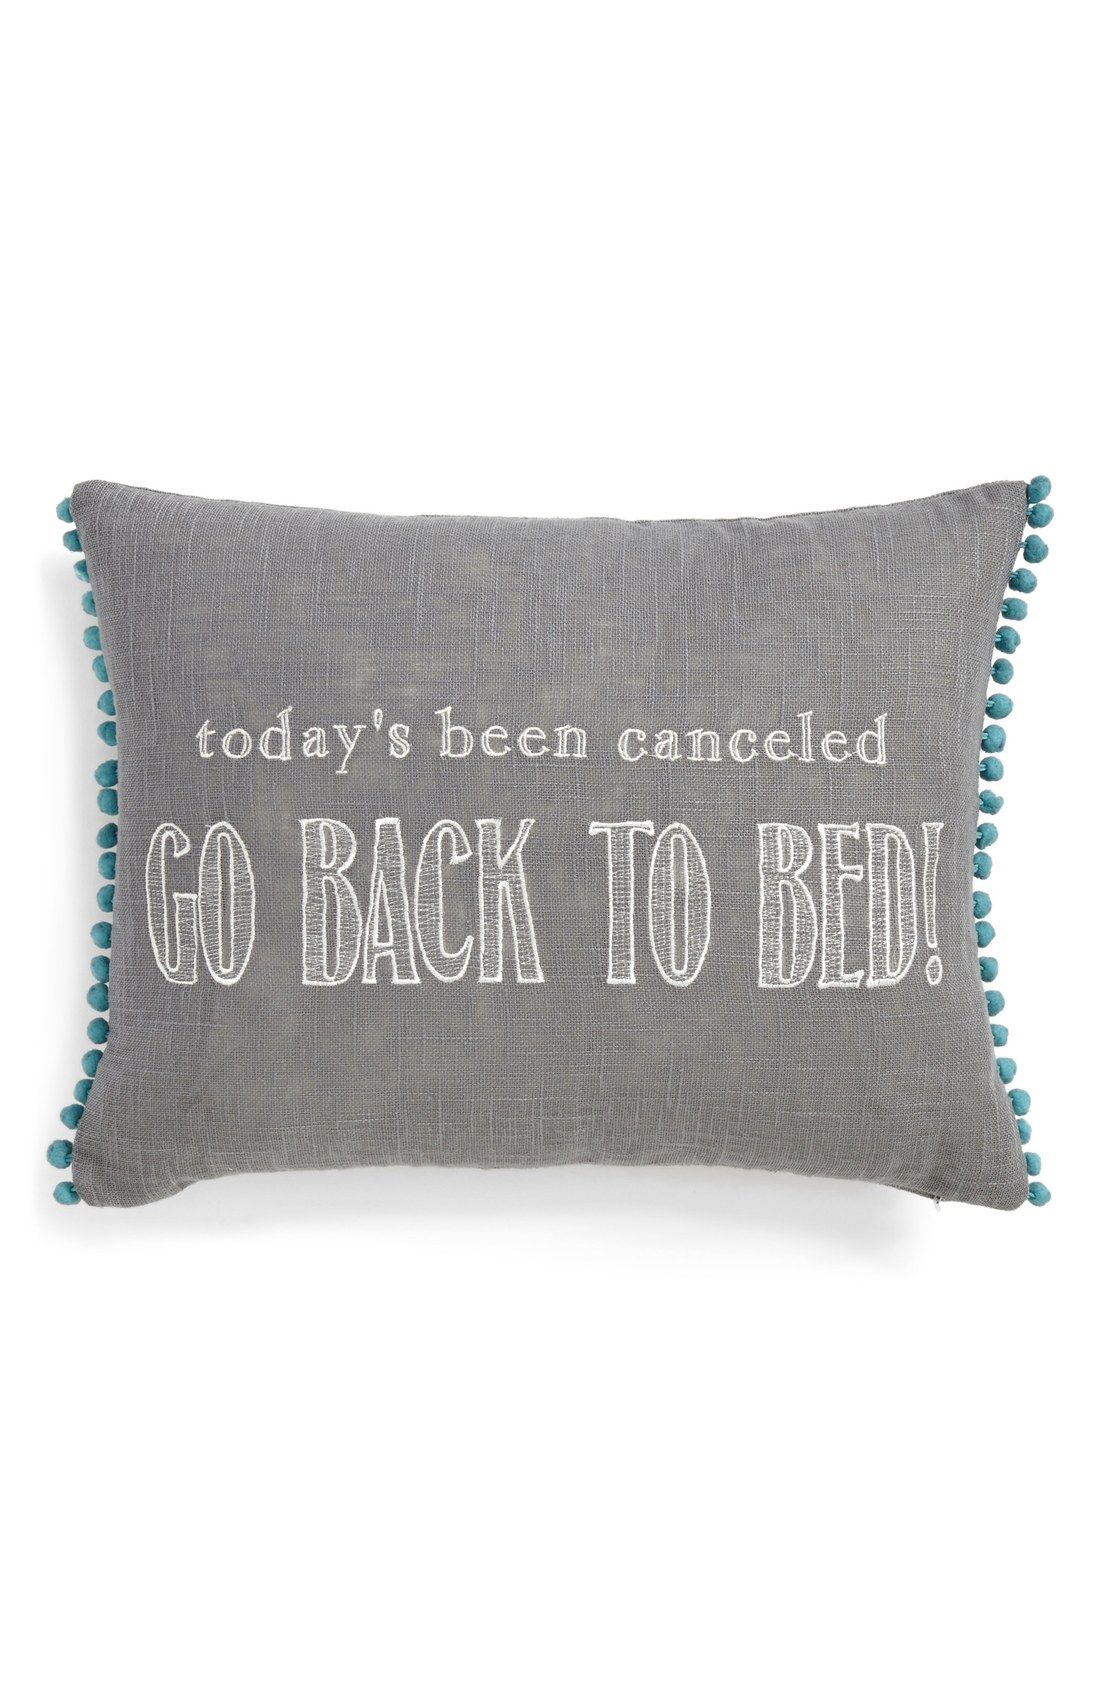 Go Back To Bed Love This Cute Pillow Complete With Colorful